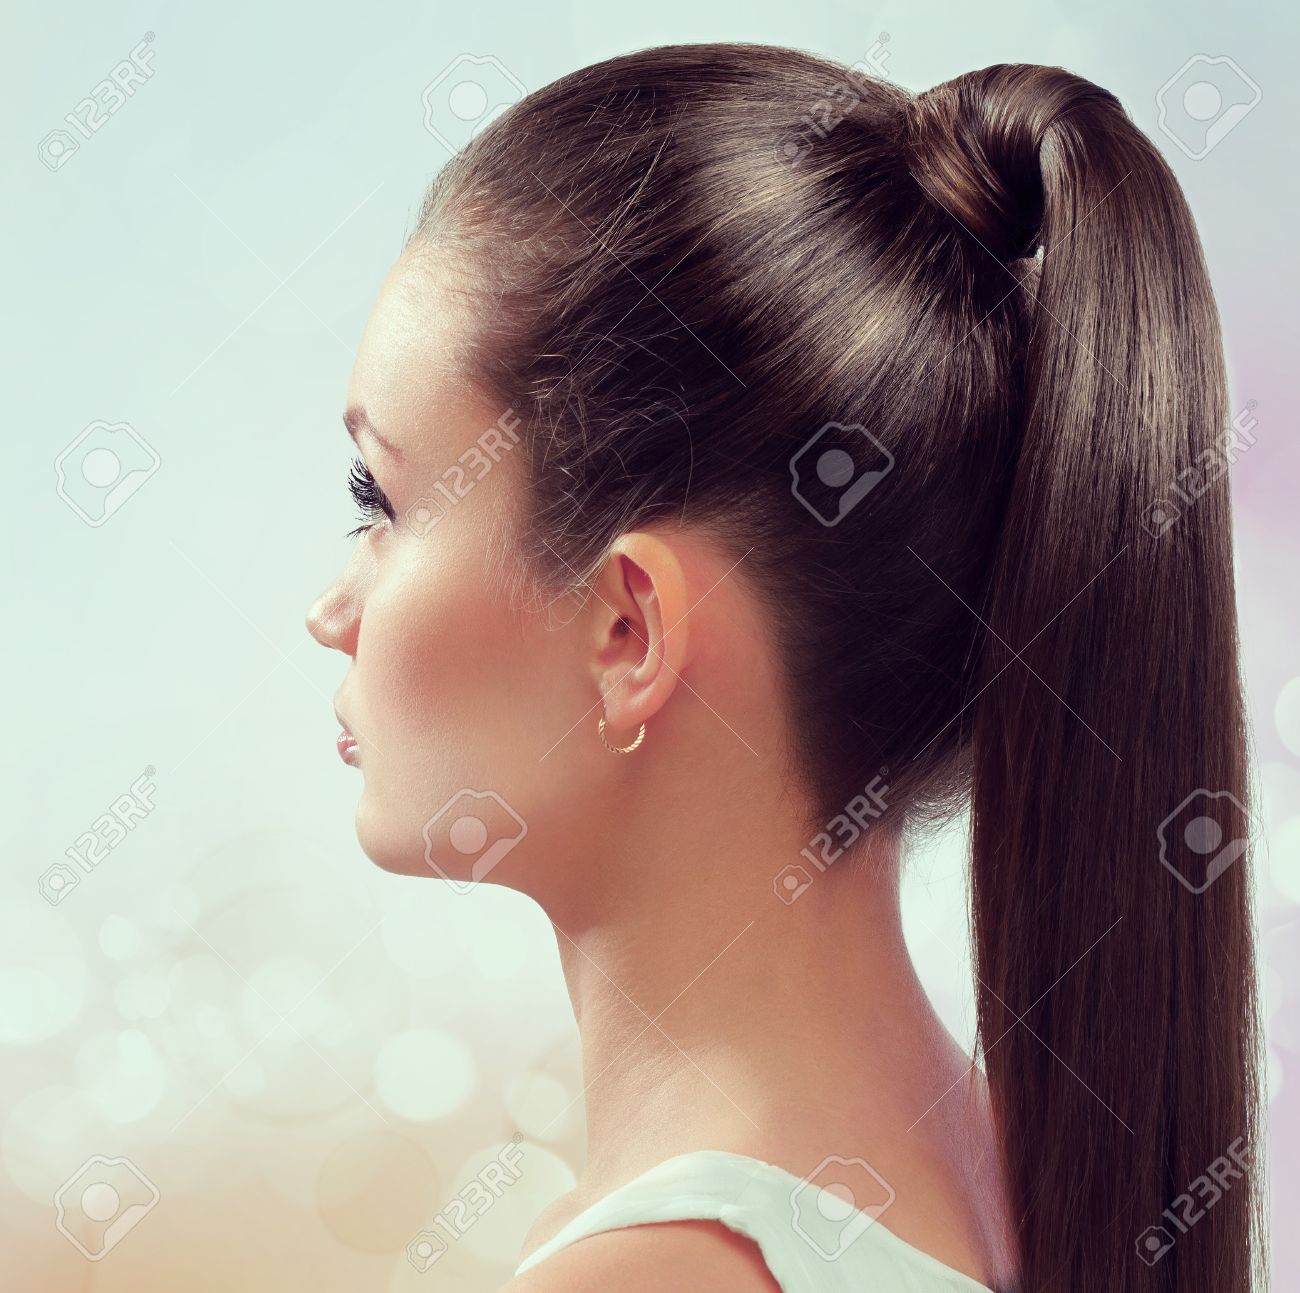 Young female with healthy shining brown hairs put in pony tail. - 24894688